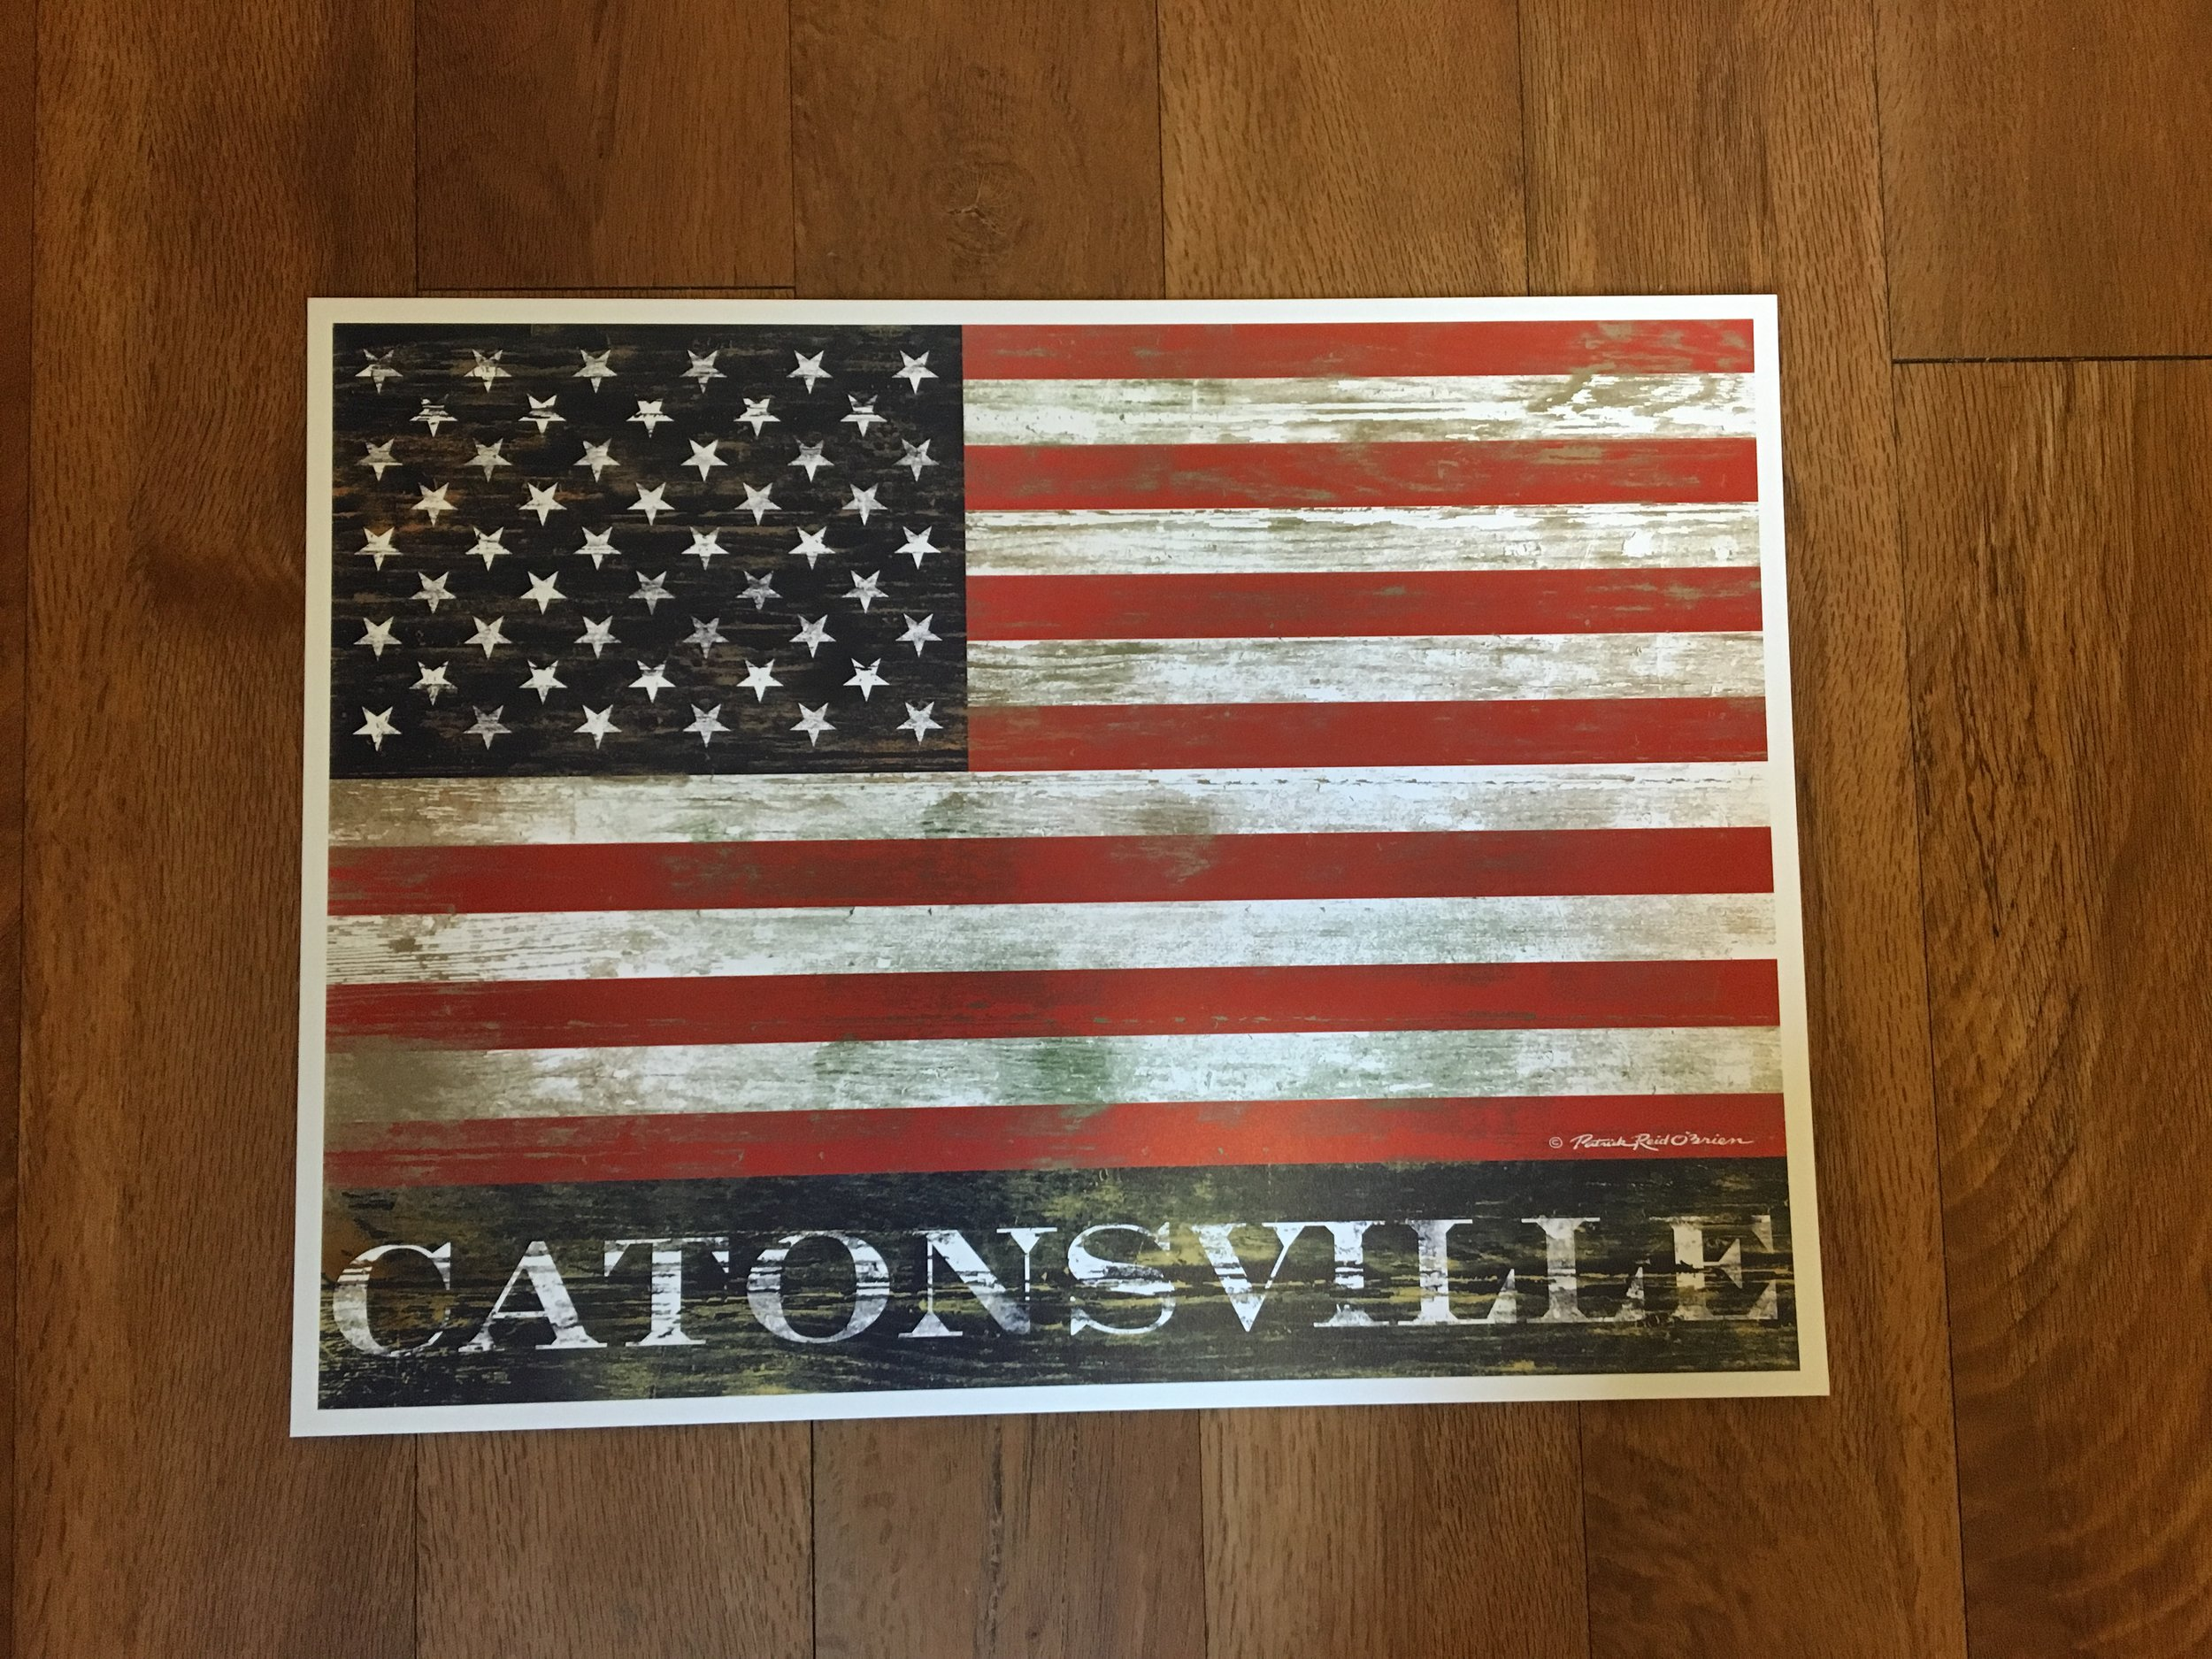 CATONSVILLE / American Flag Print by Patrick Reid O'Brien   12x16     $38.99